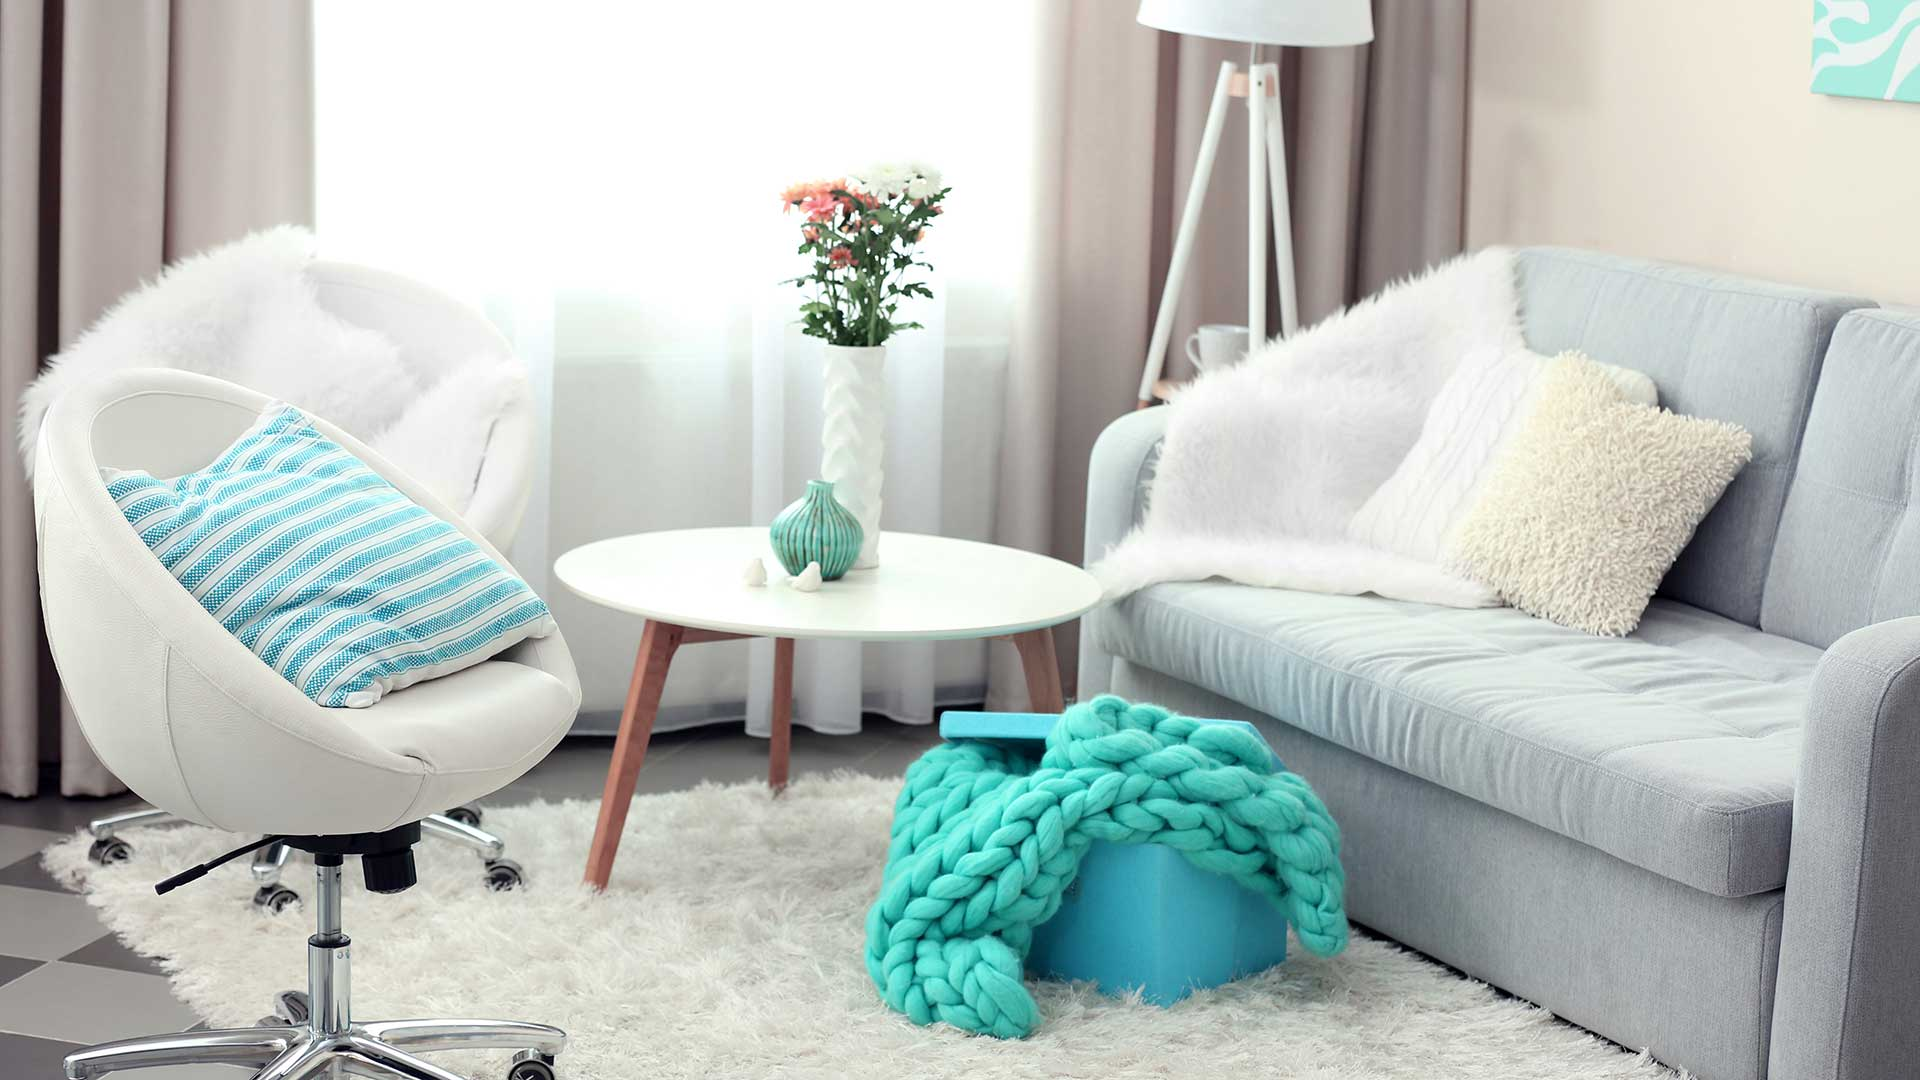 Living Spaces Study: People Want More Space, Less Stuff